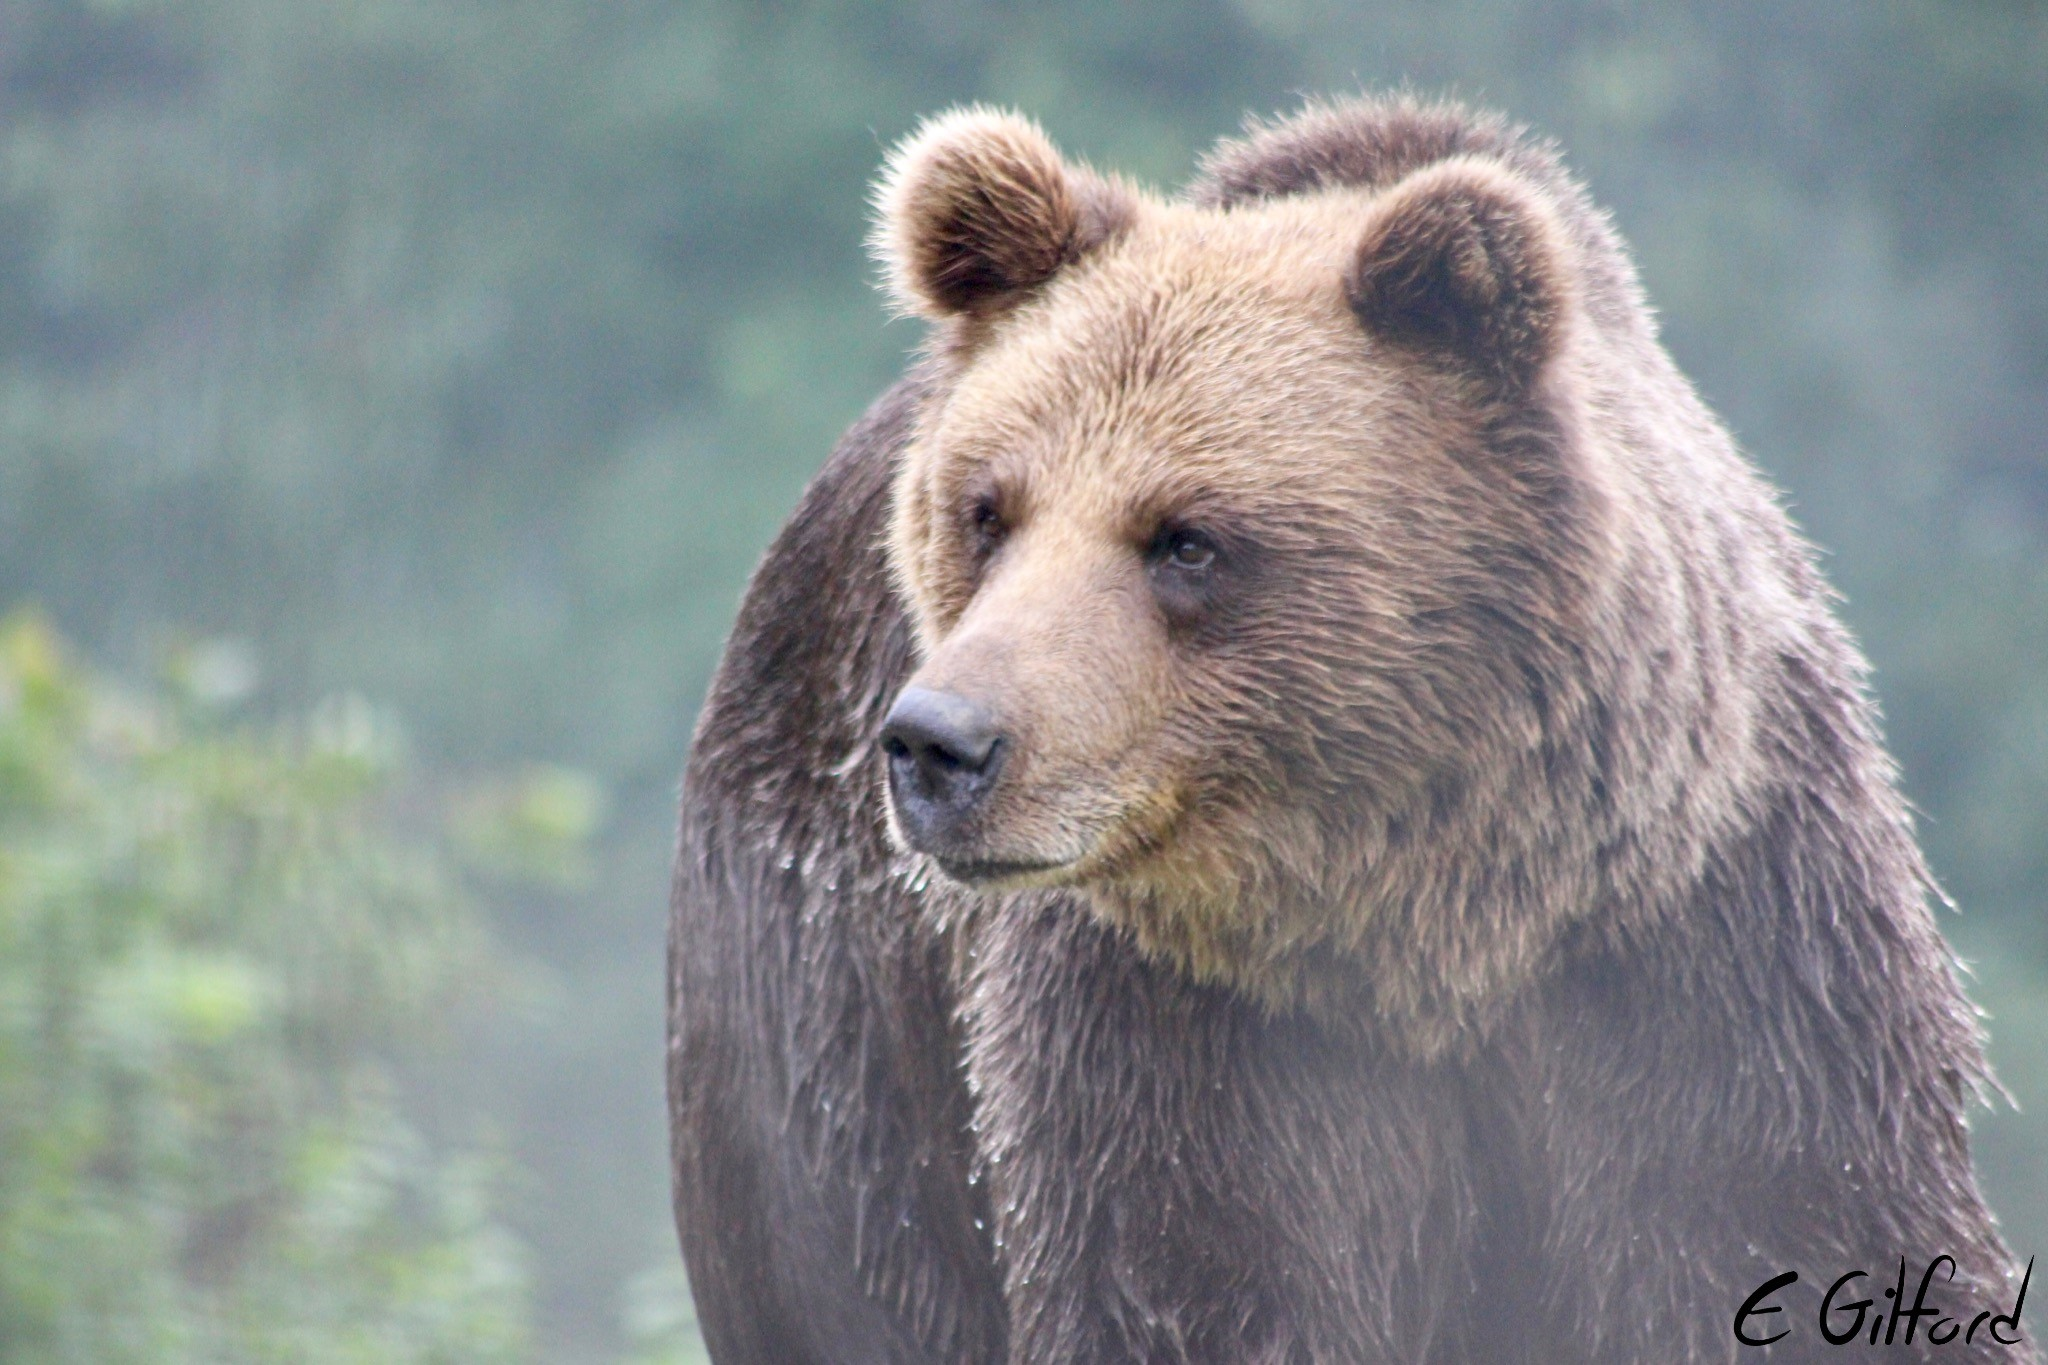 A bear at the bear sanctuary in Romania